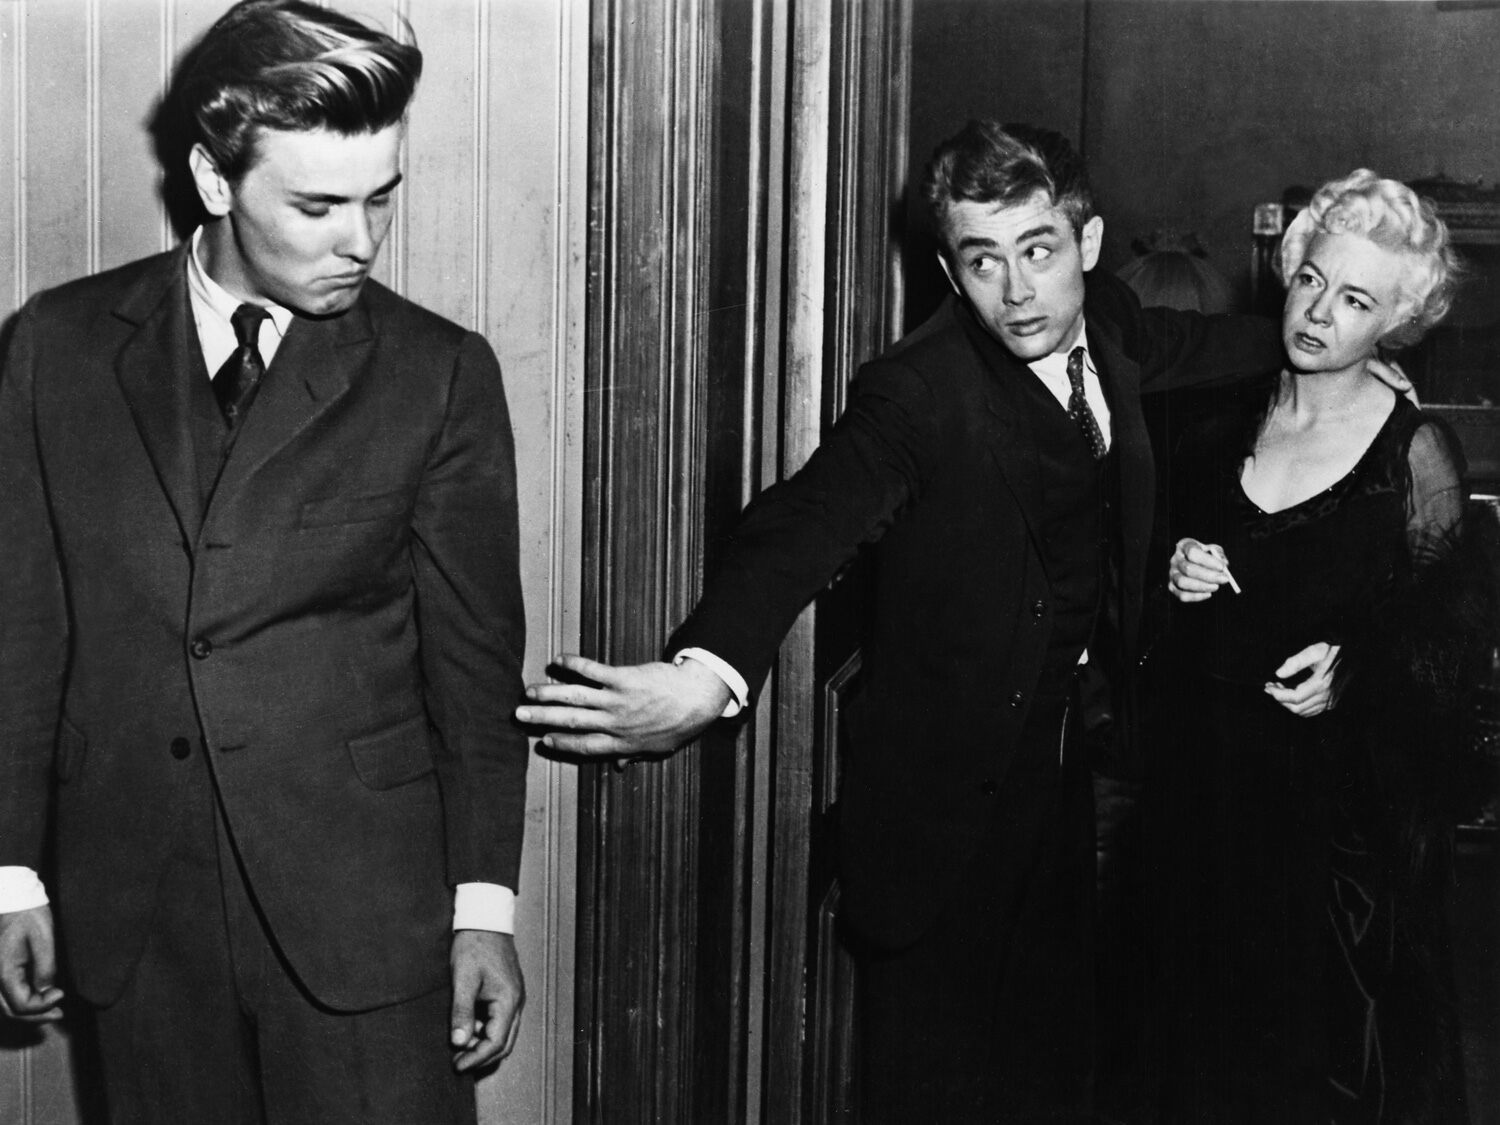 Richard Davalos, James Dean and Jo Van Fleet (who won an Oscar for her role) in East of Eden. This image and others of Davalos were used for several albums by The Smiths.